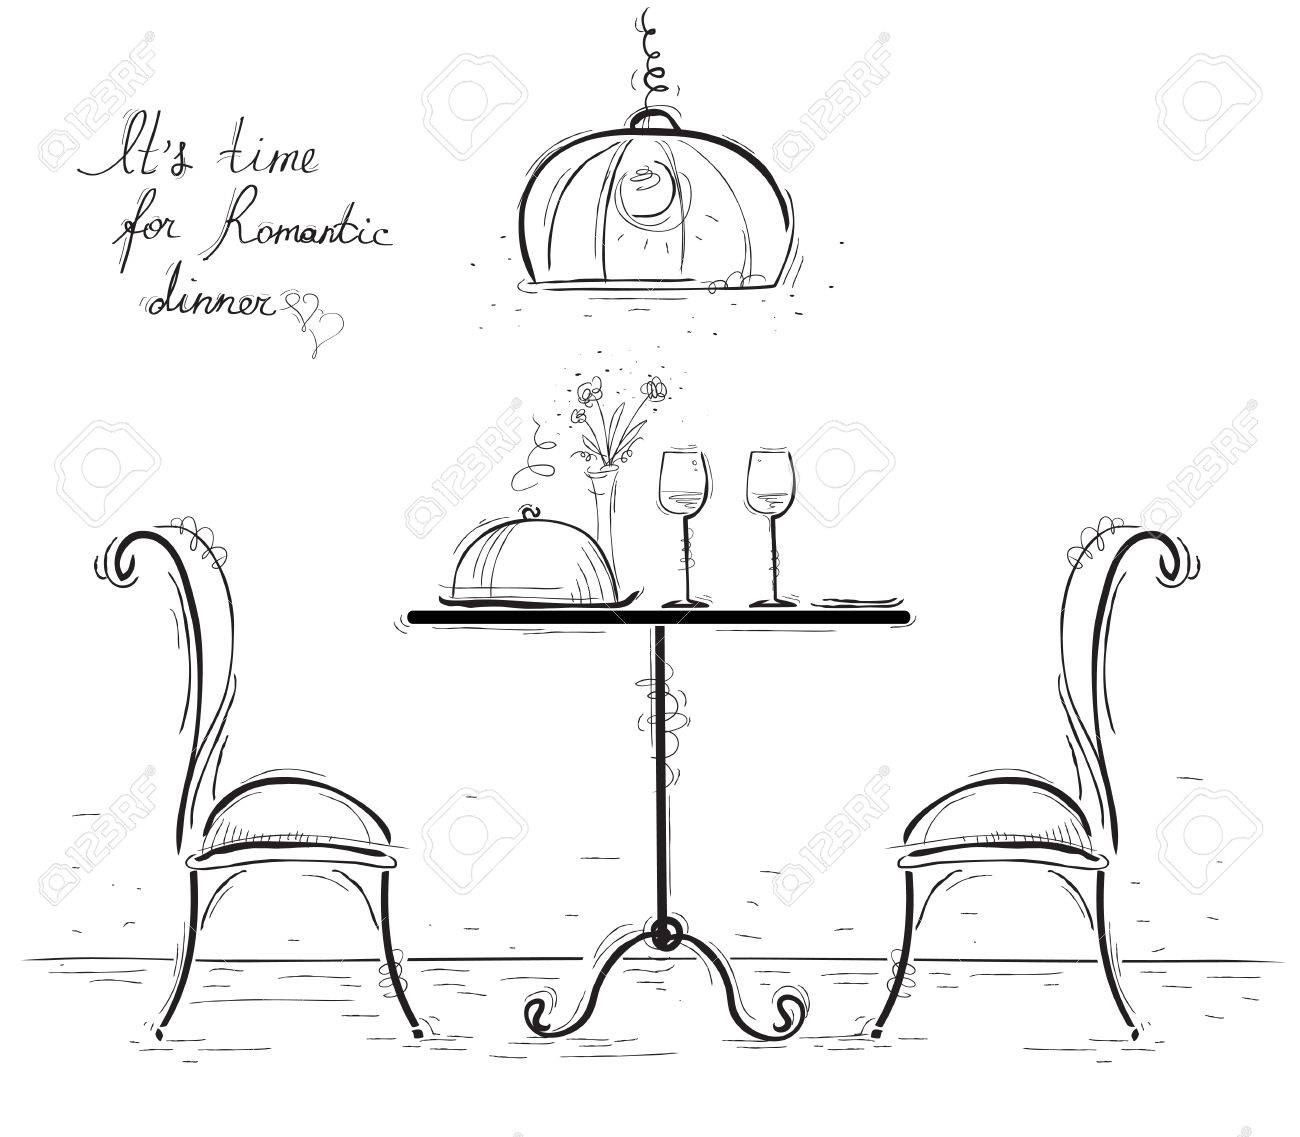 Romantic dinner for two lovers.Sketchy illustration with table and two chairs isolated on white. - 57016255